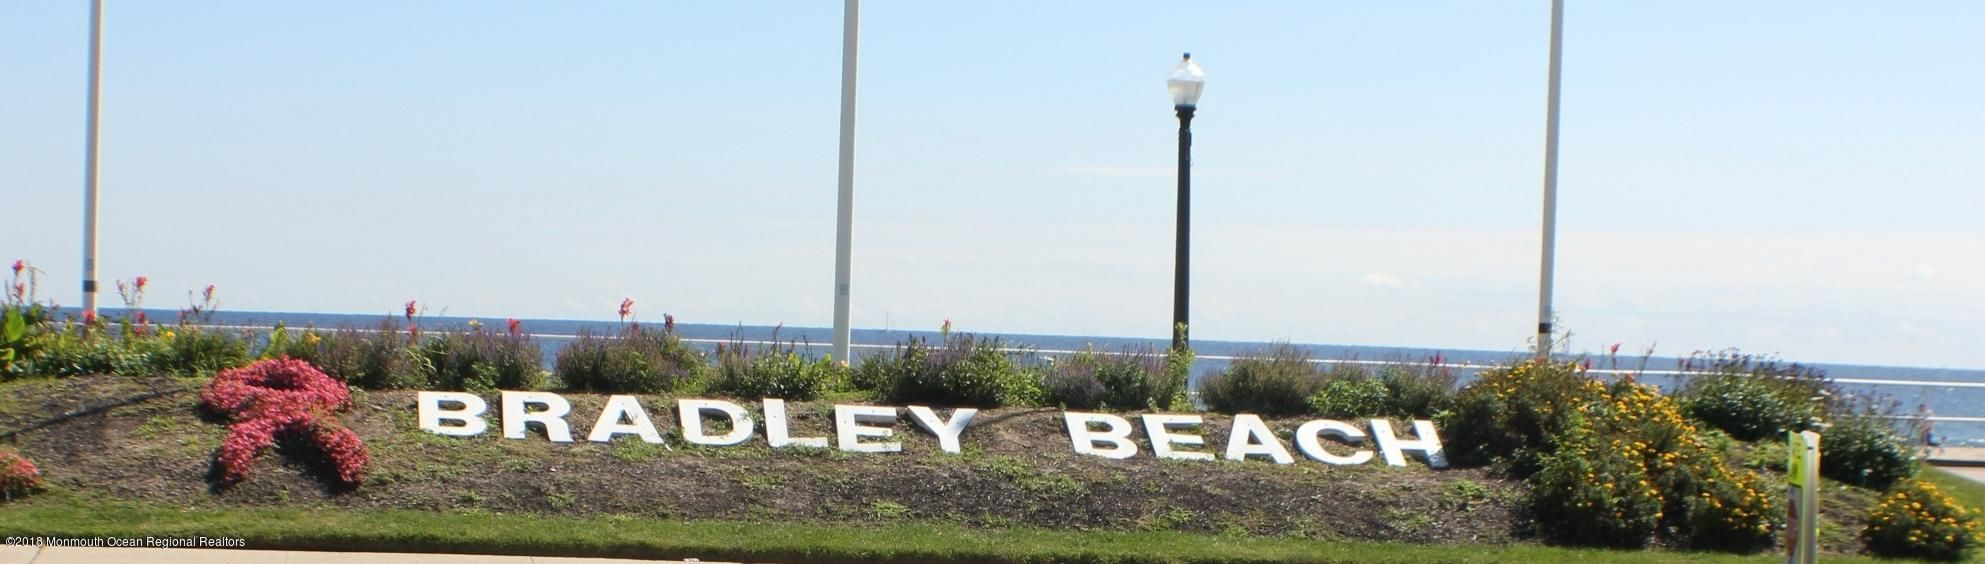 Bradley Beach welcomes all